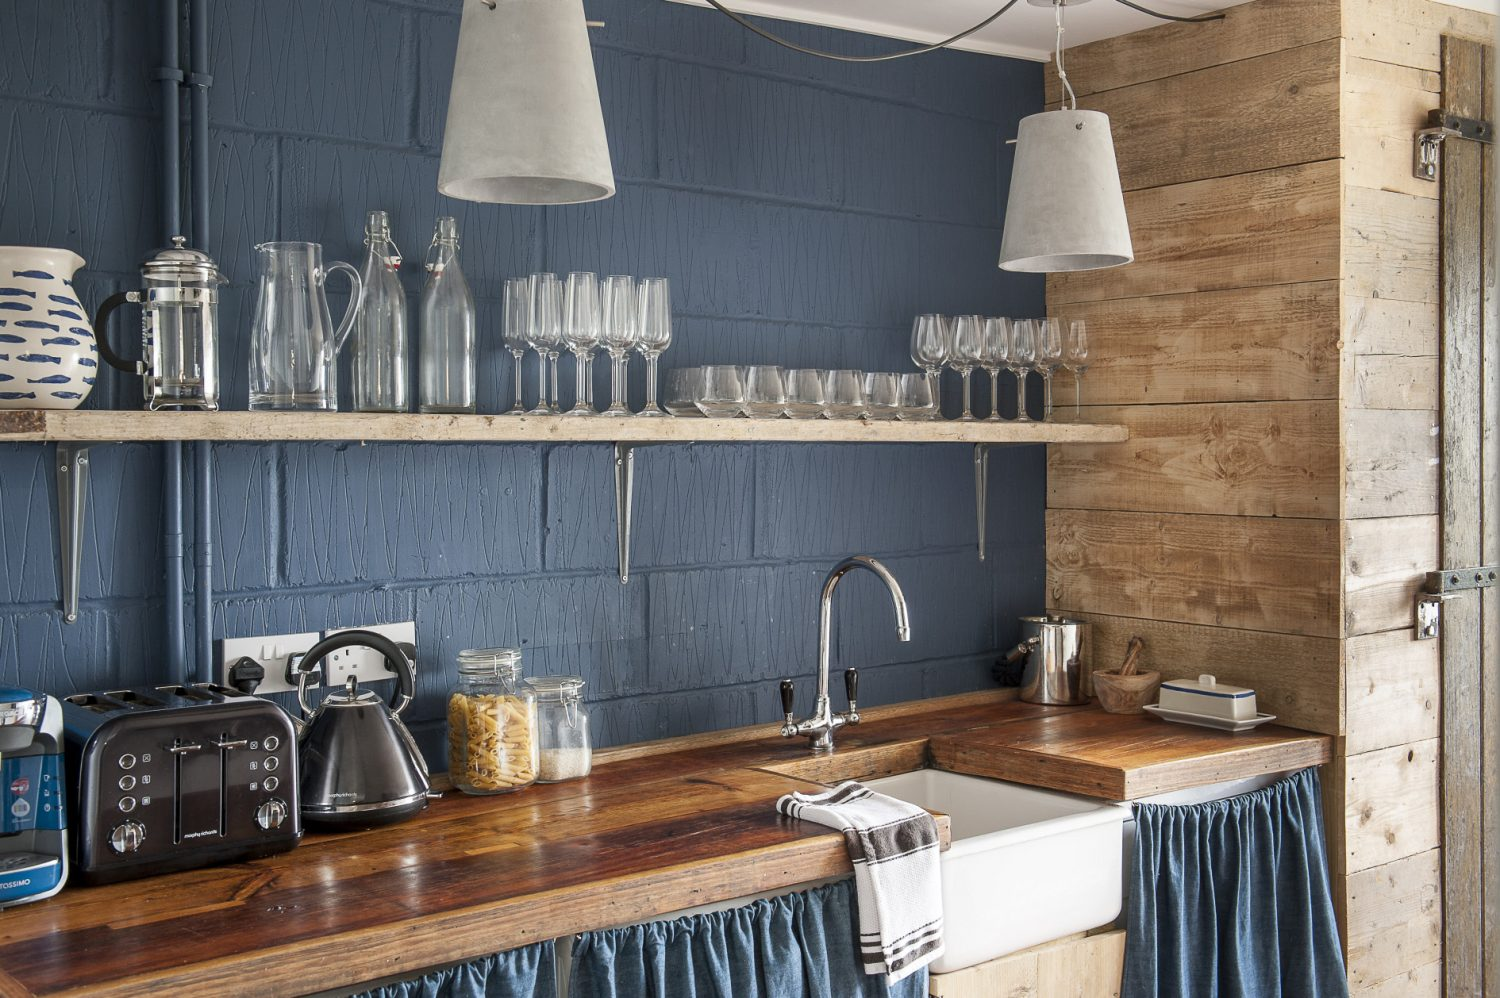 """Francesca """"doesn't do"""" fitted kitchens. The natural wood shelving and a work surface were made by H&B Wood Recycling. The full height cupboard was made by Francesca's father from old wooden tractor trailer doors. Blue curtains in denim by Merchant & Mills in Rye cover the dishwasher, freezer and washing machine. The kitchen walls are painted in Ammonite and Stiffkey Blue by Farrow & Ball"""